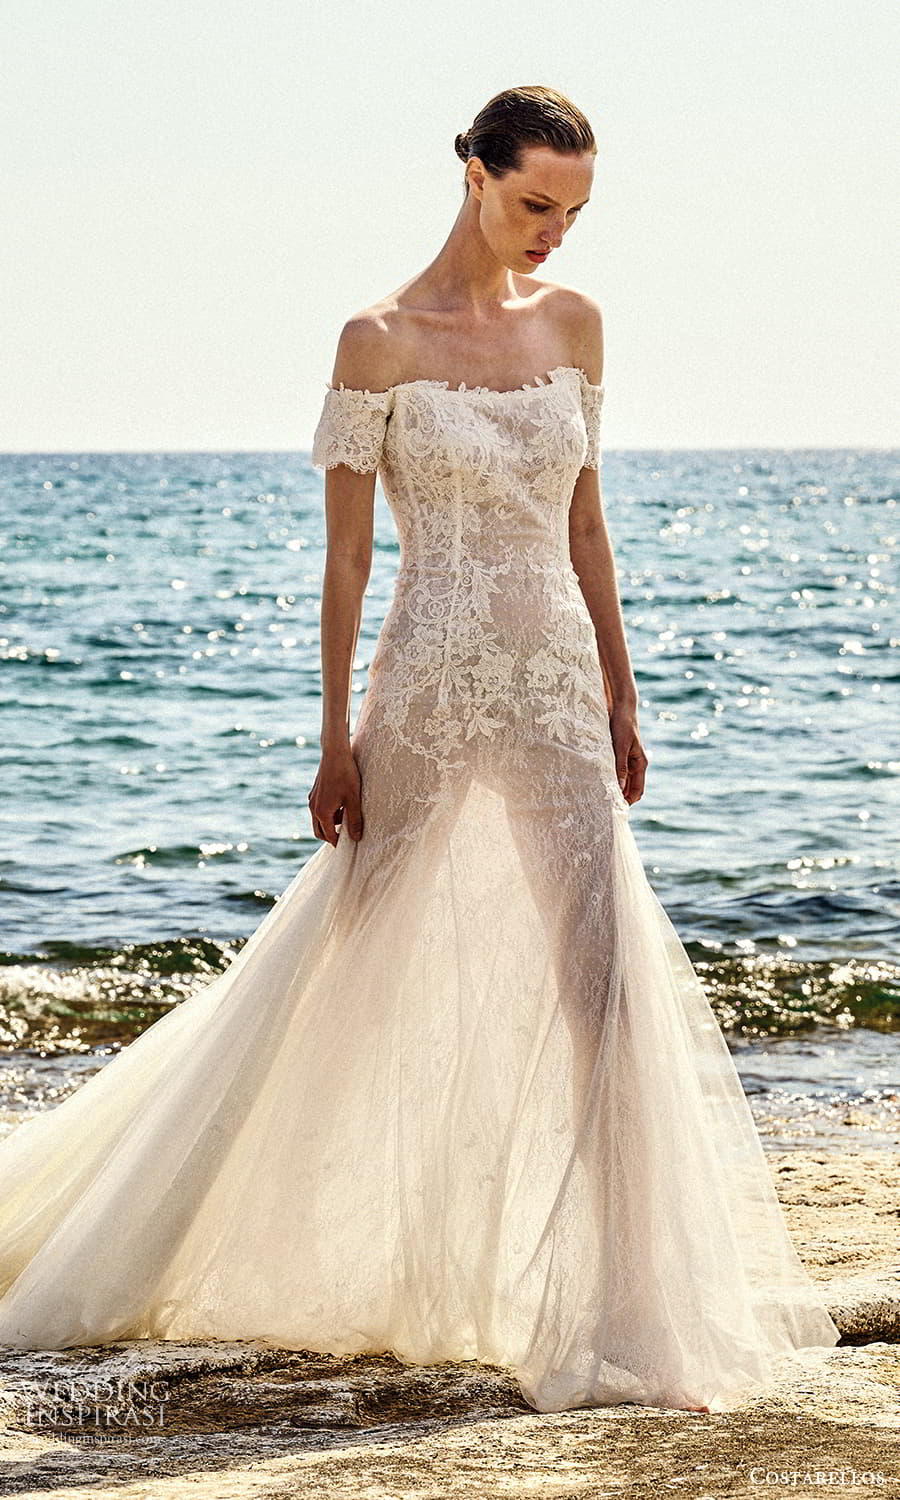 costarellos spring 2022 bridal off shoulder short sleeves straight across neckline fully embellished lace fit flare mermaid wedding dress chapel train (2) mv